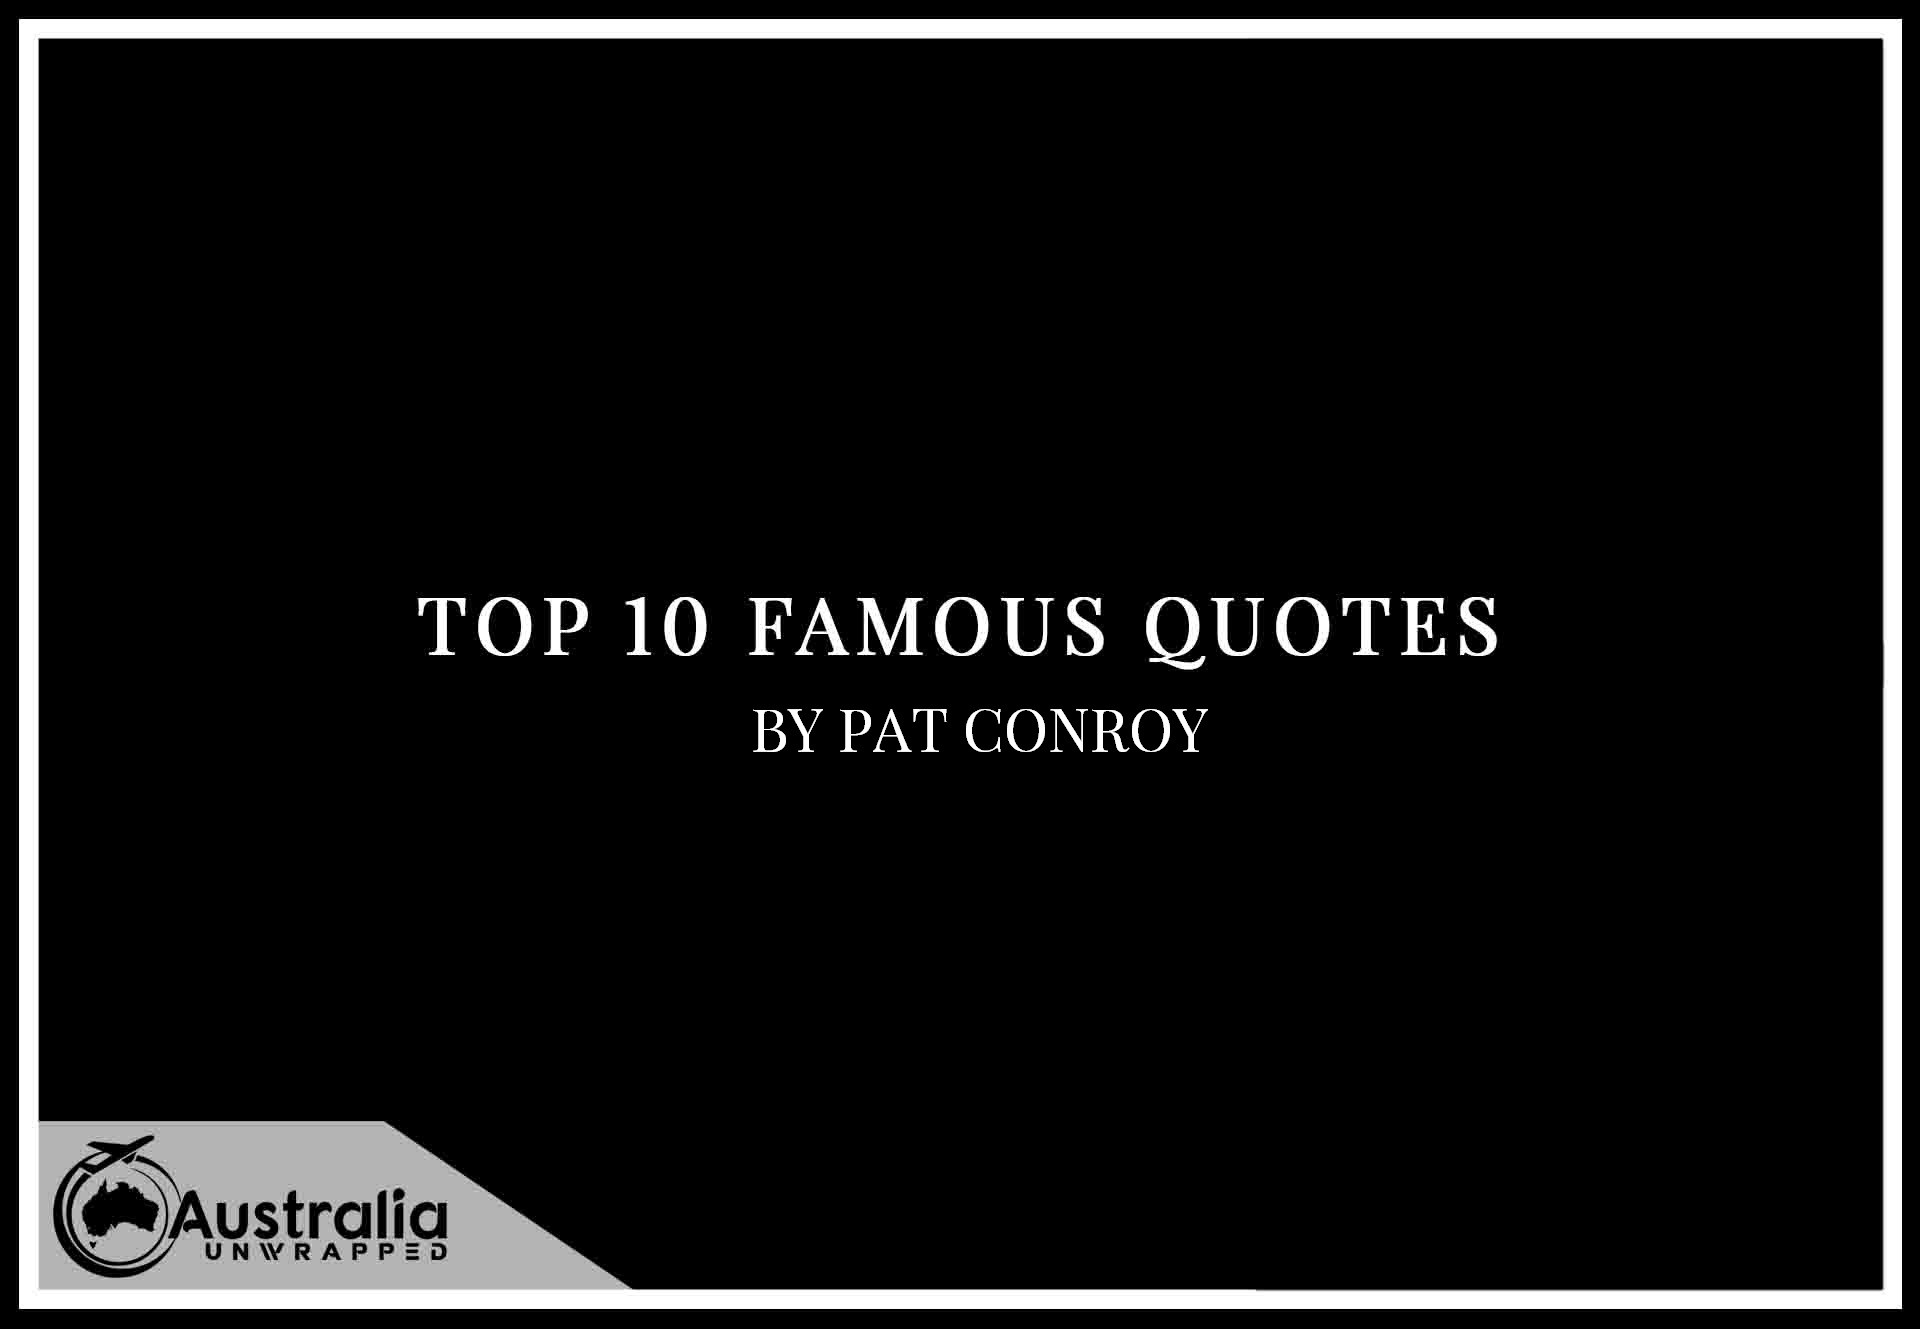 Top 10 Famous Quotes by Author Pat Conroy